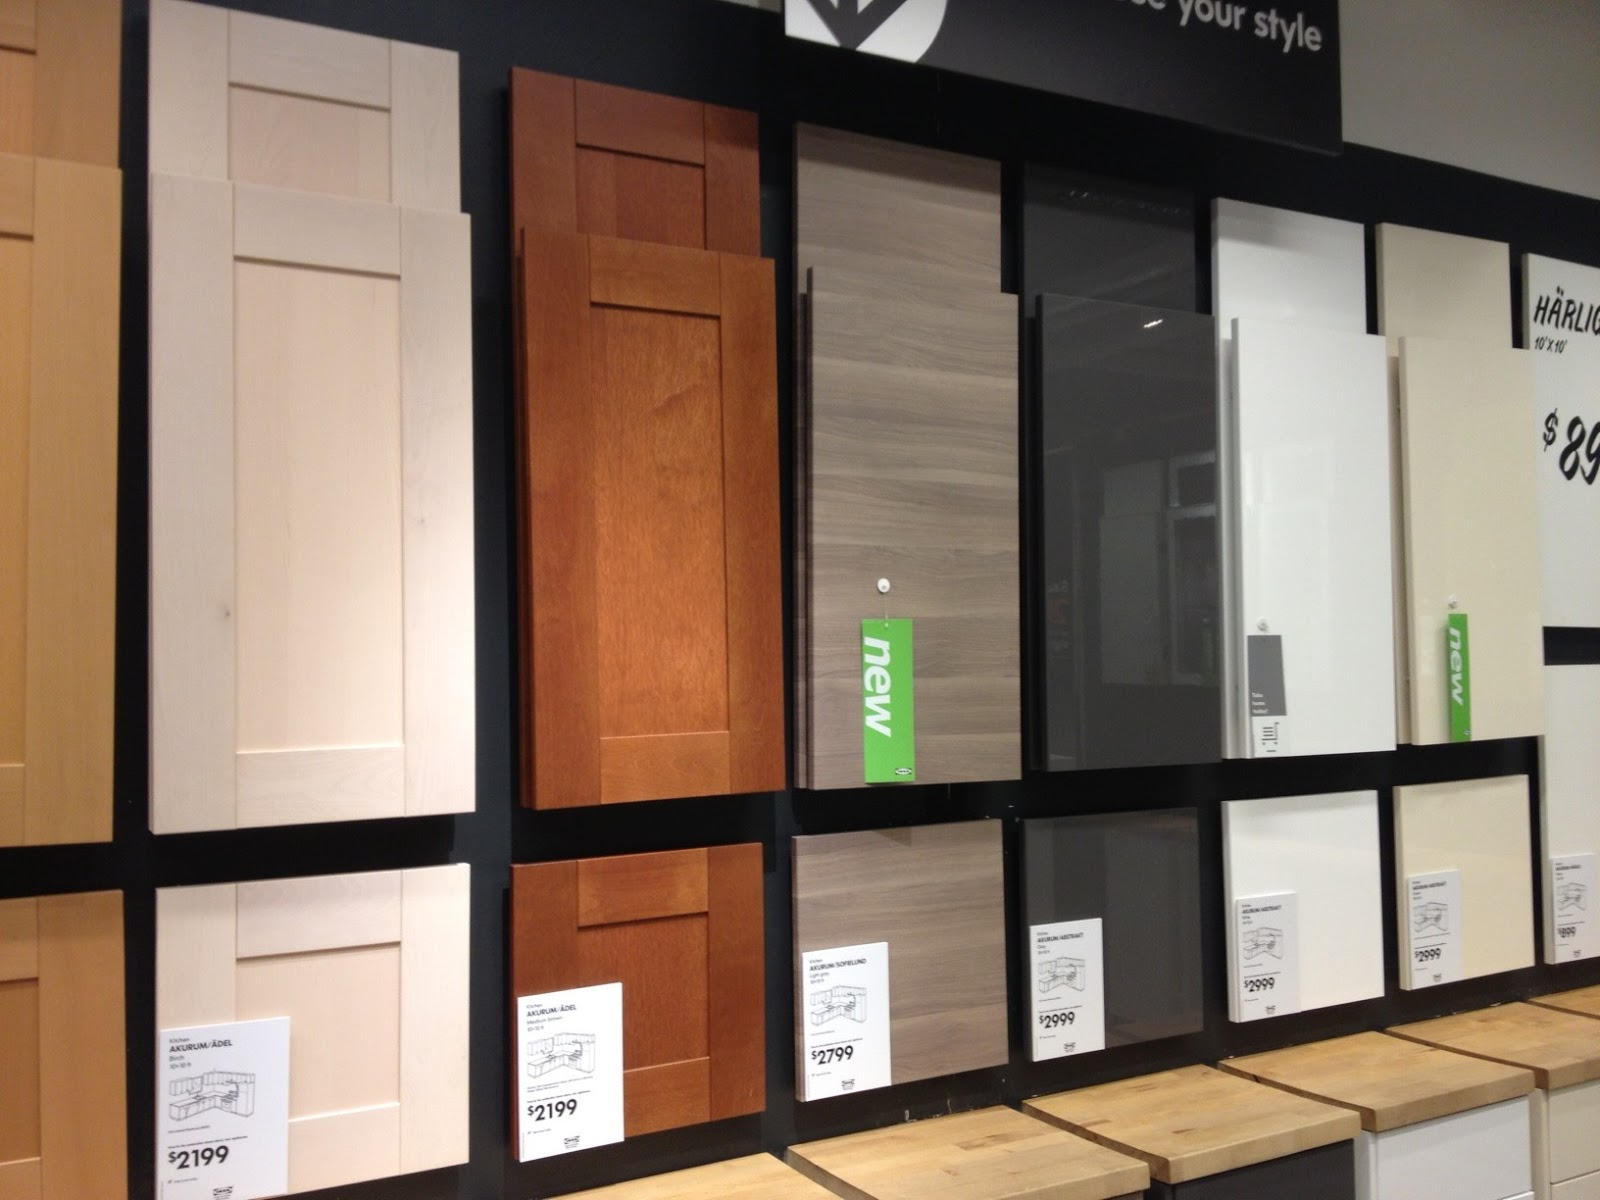 life and architecture: ikea kitchen cabinets - the 2013 door lineup